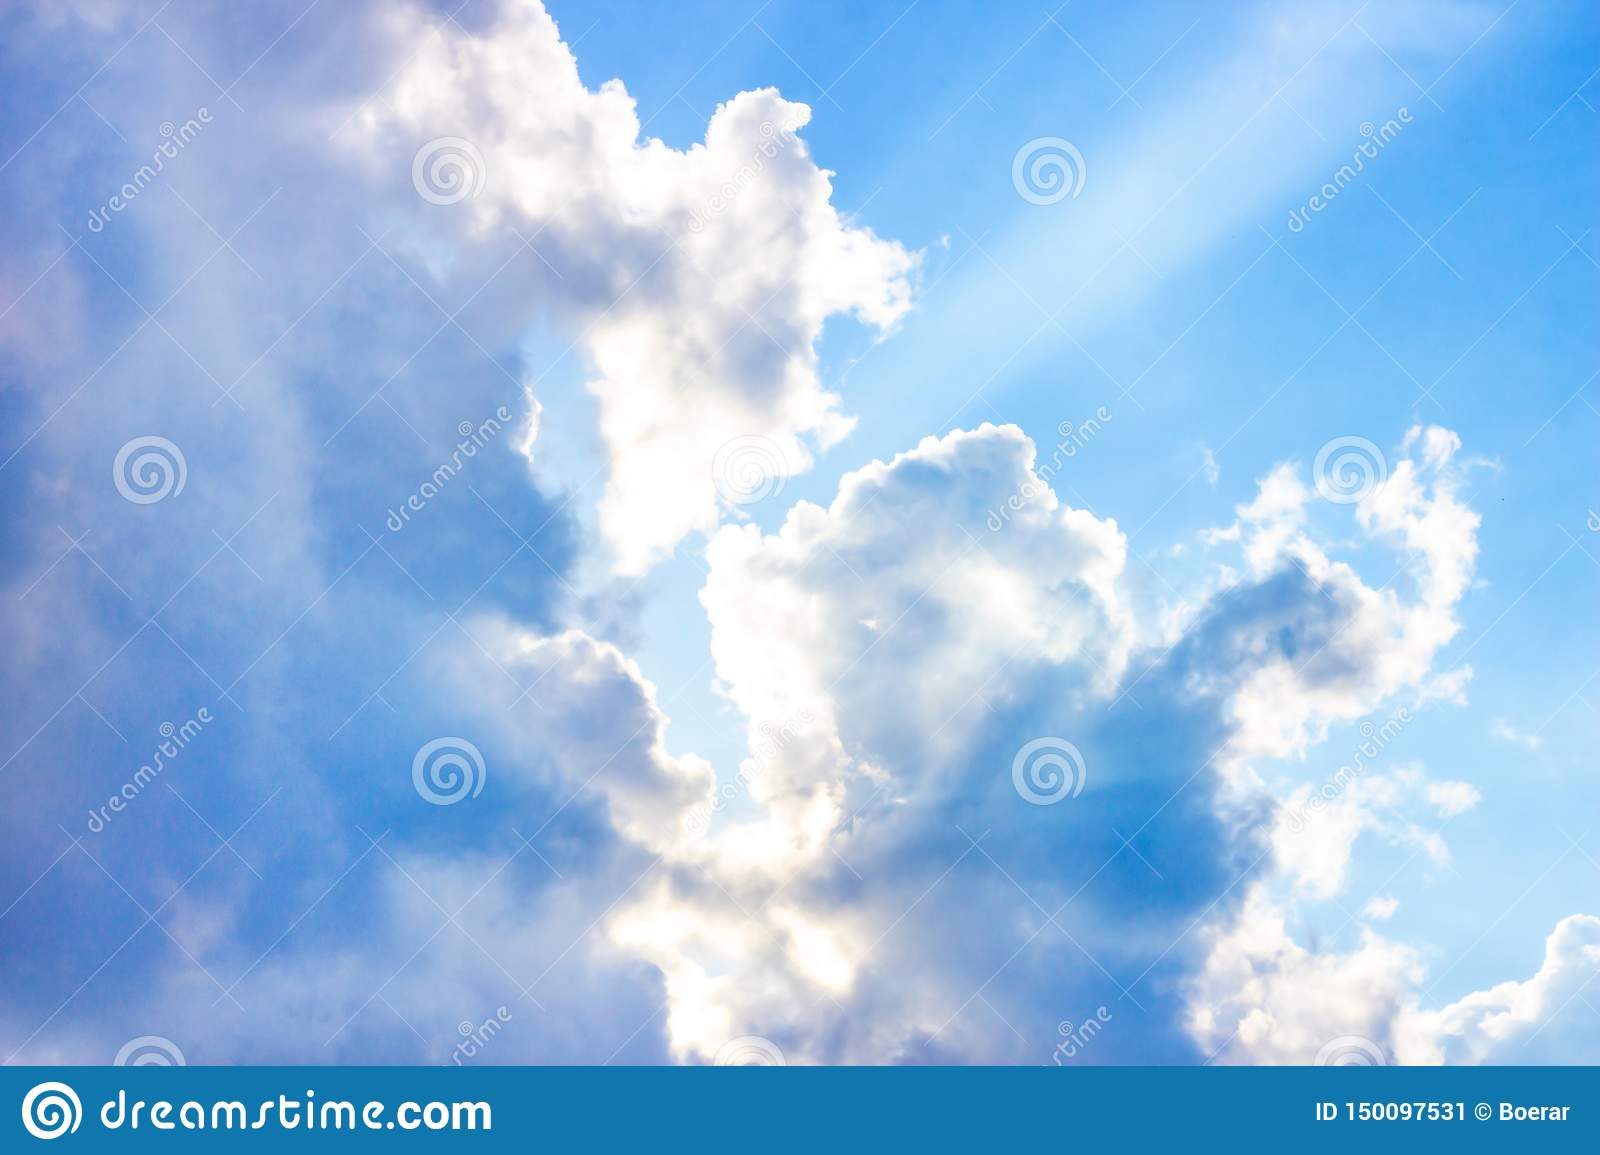 Beautiful gloomy blue sky with fluffy clouds in summer morning peace day as a background